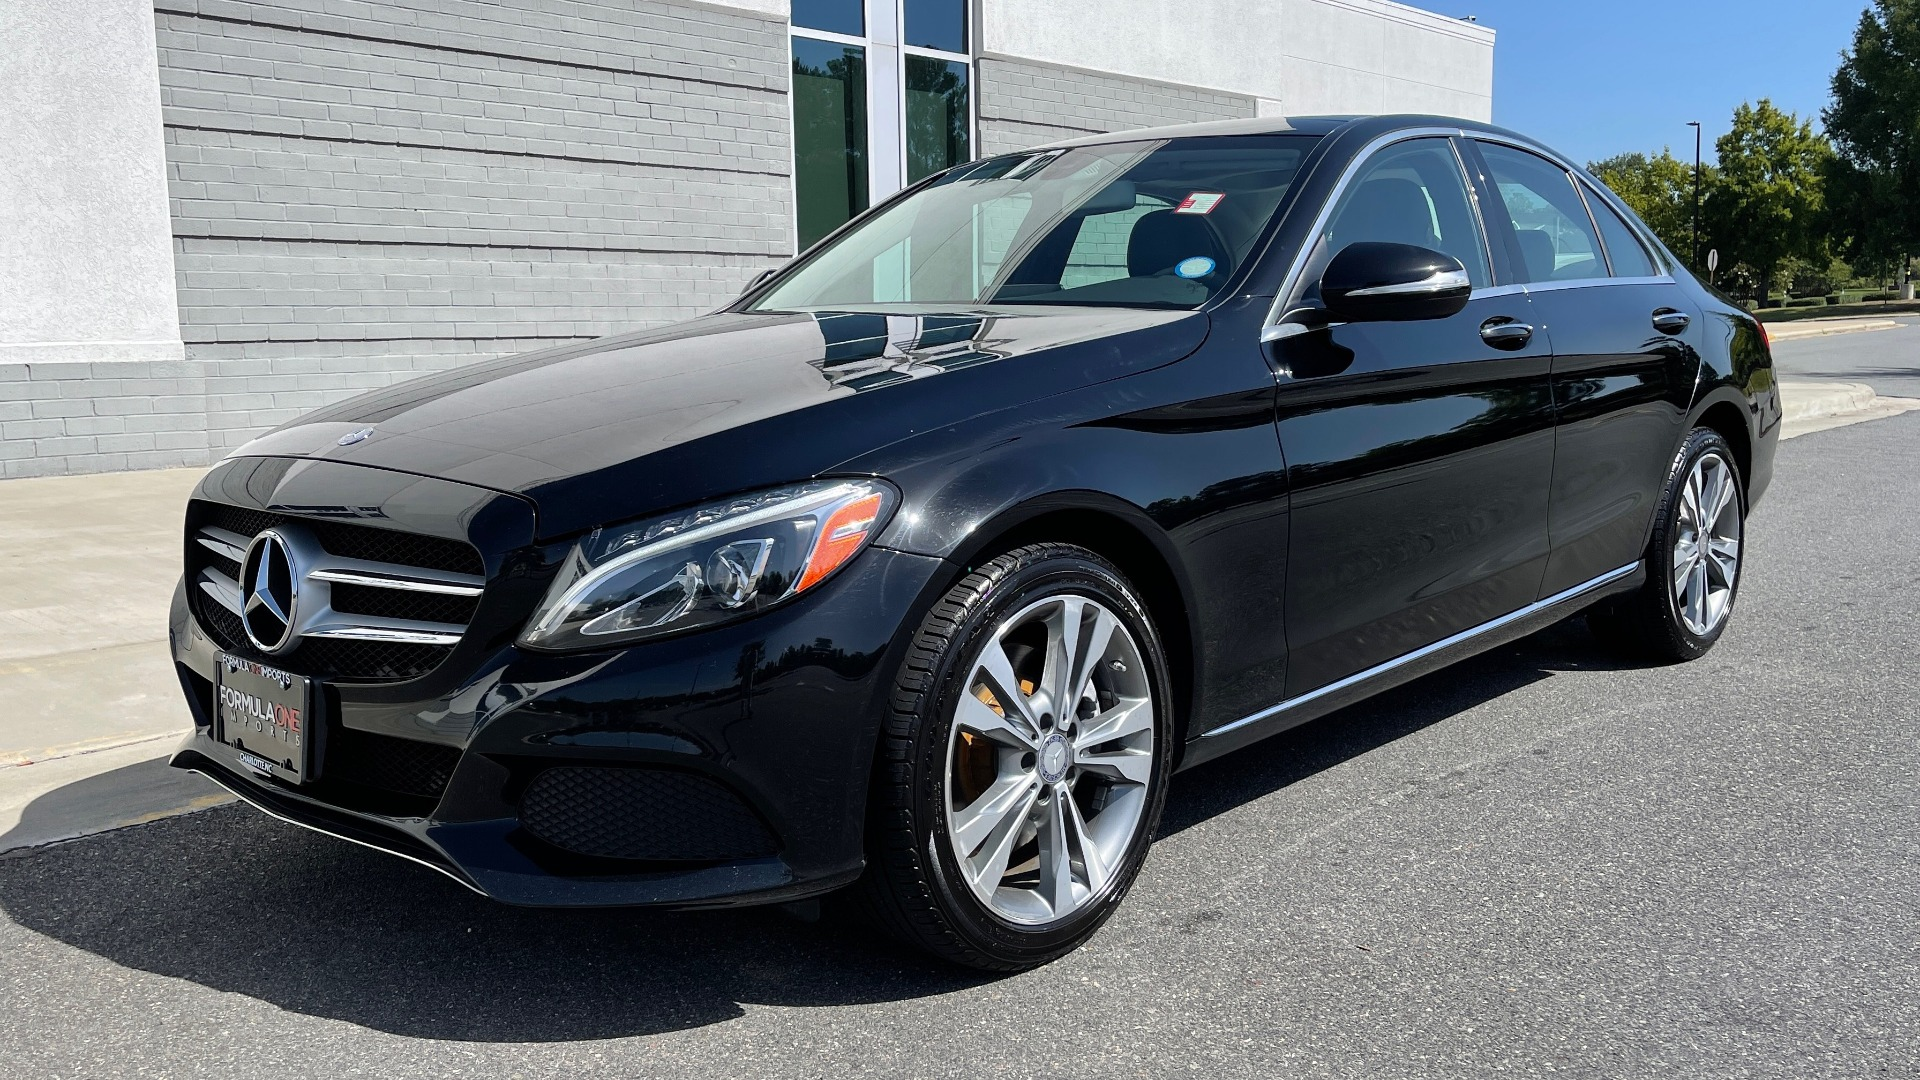 Used 2015 Mercedes-Benz C-CLASS C 300 4MATIC PREMIUM / MULTI MEDIA PKG / BSA / REARVIEW for sale $21,795 at Formula Imports in Charlotte NC 28227 3